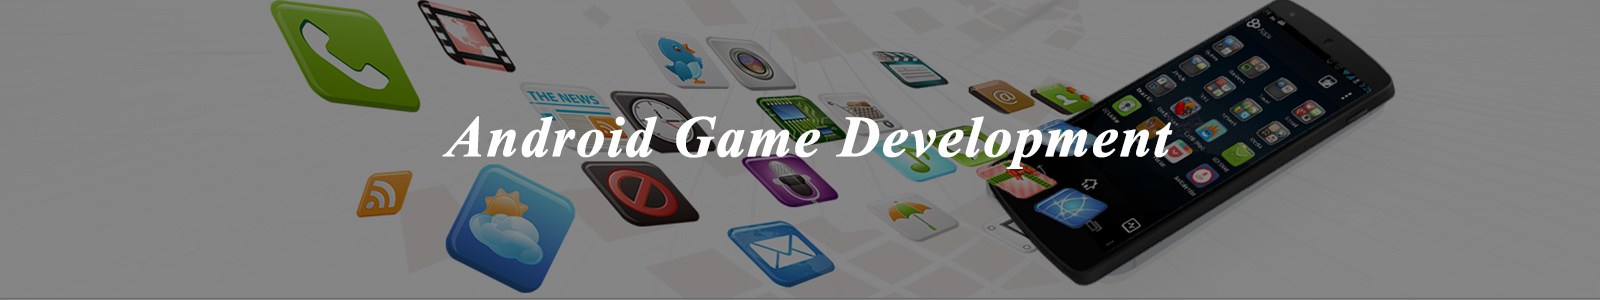 android-game-banner